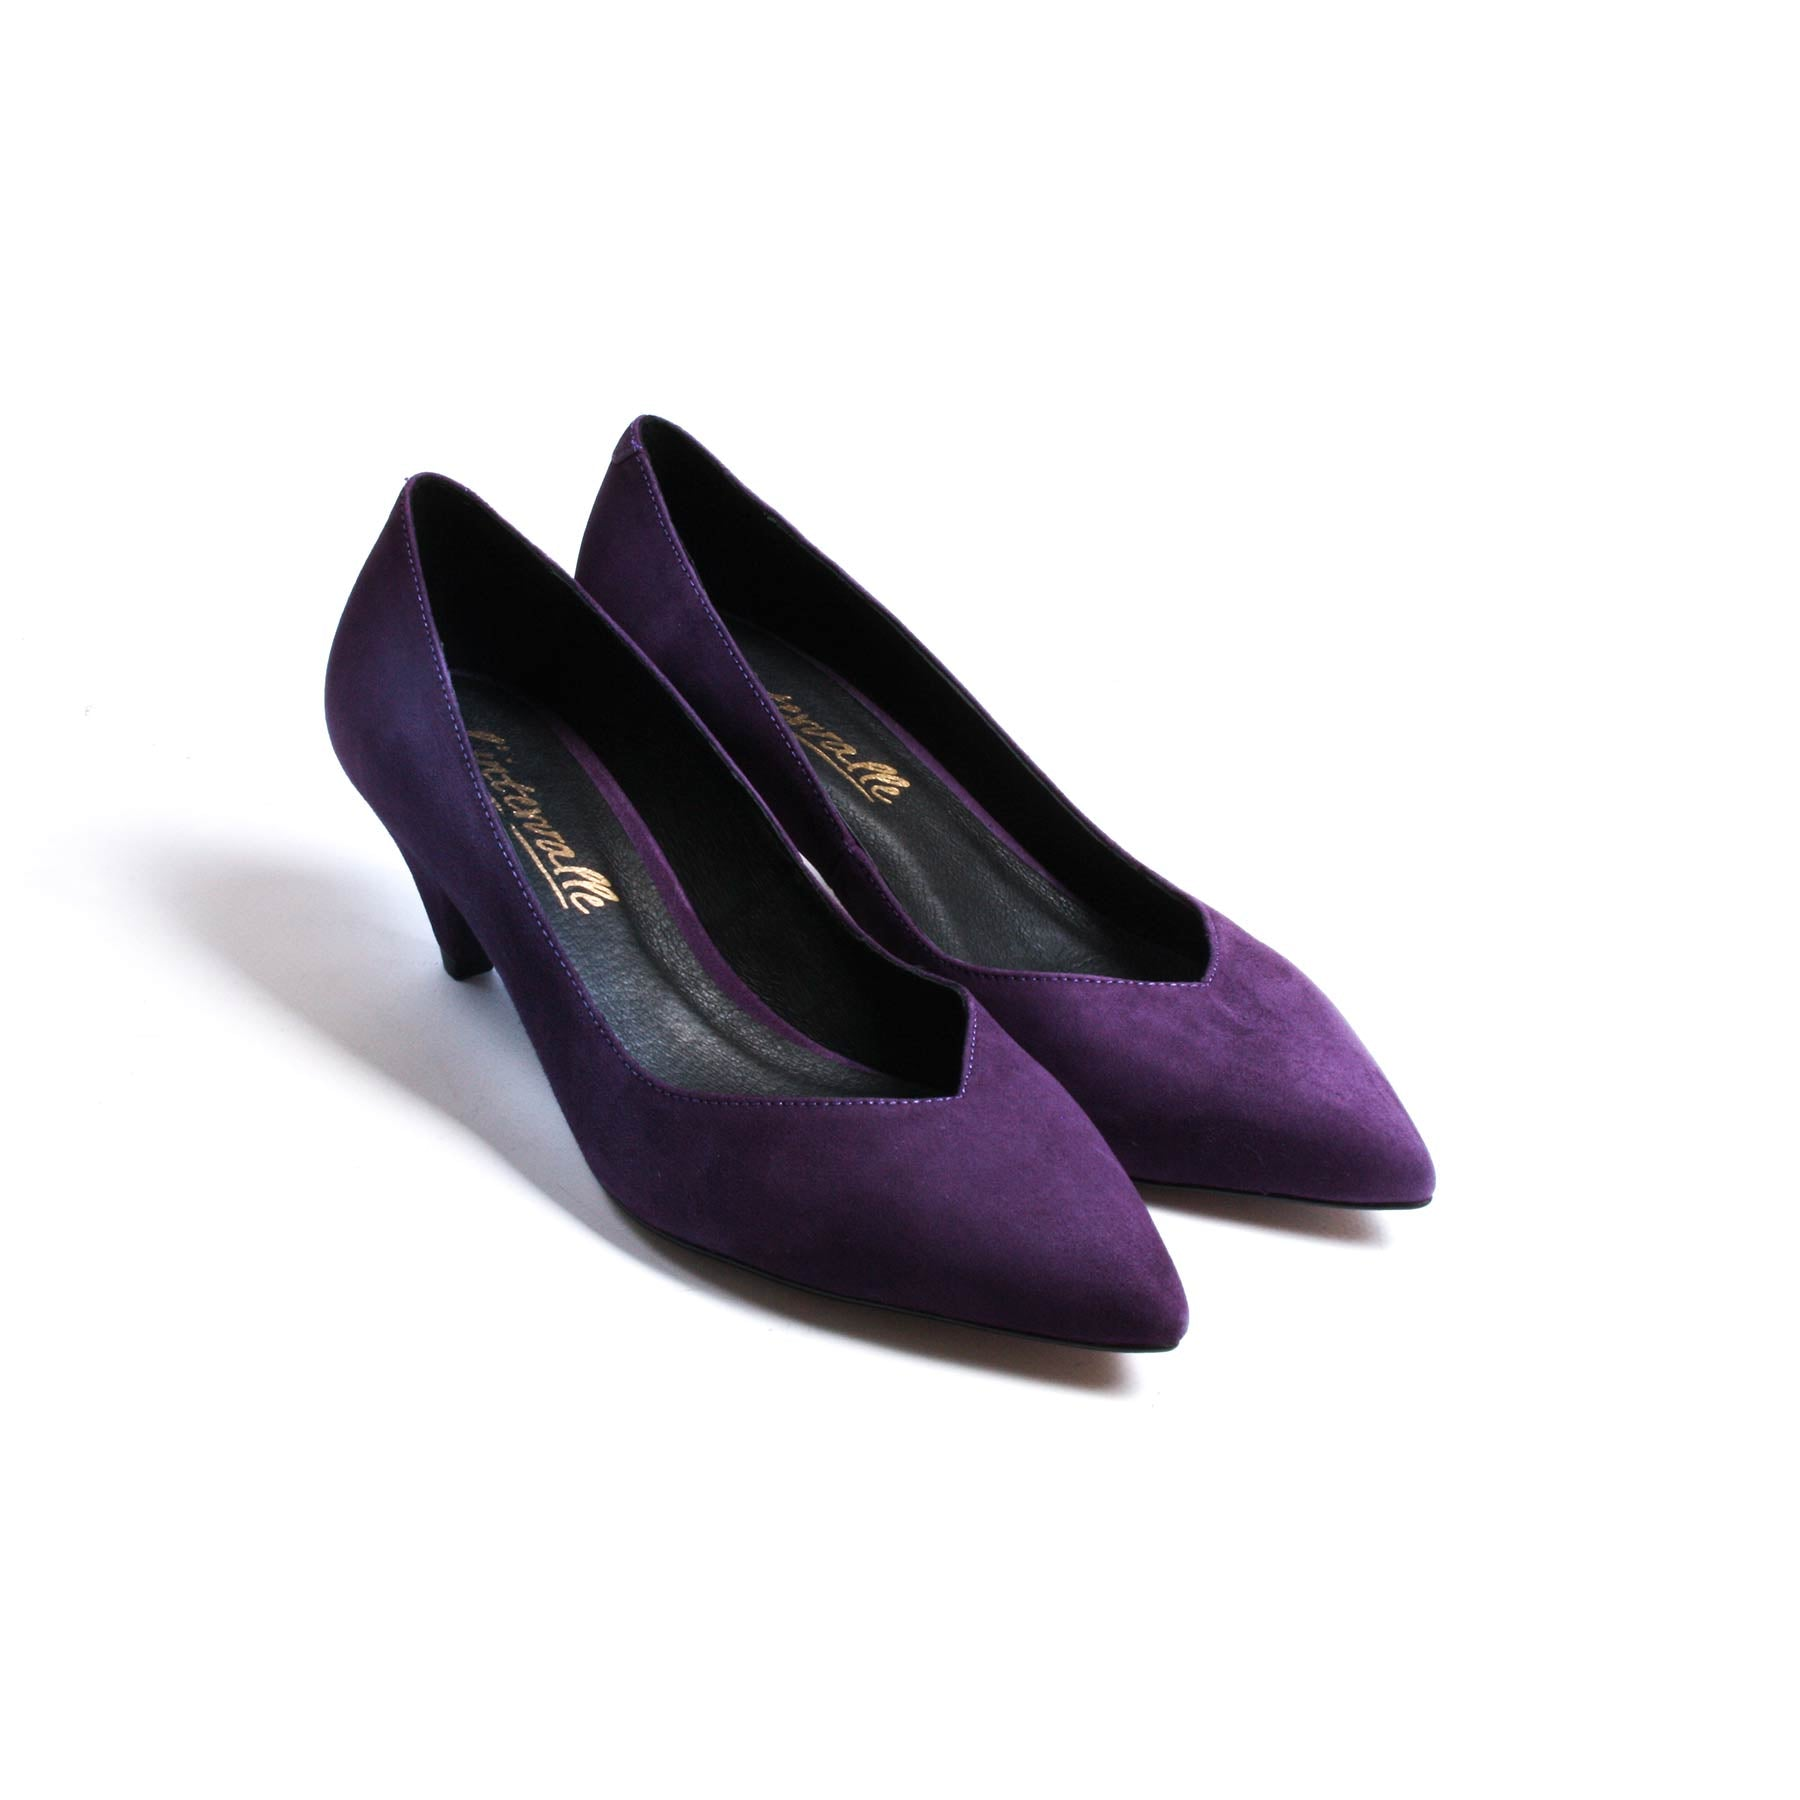 Perseo Purple Suede